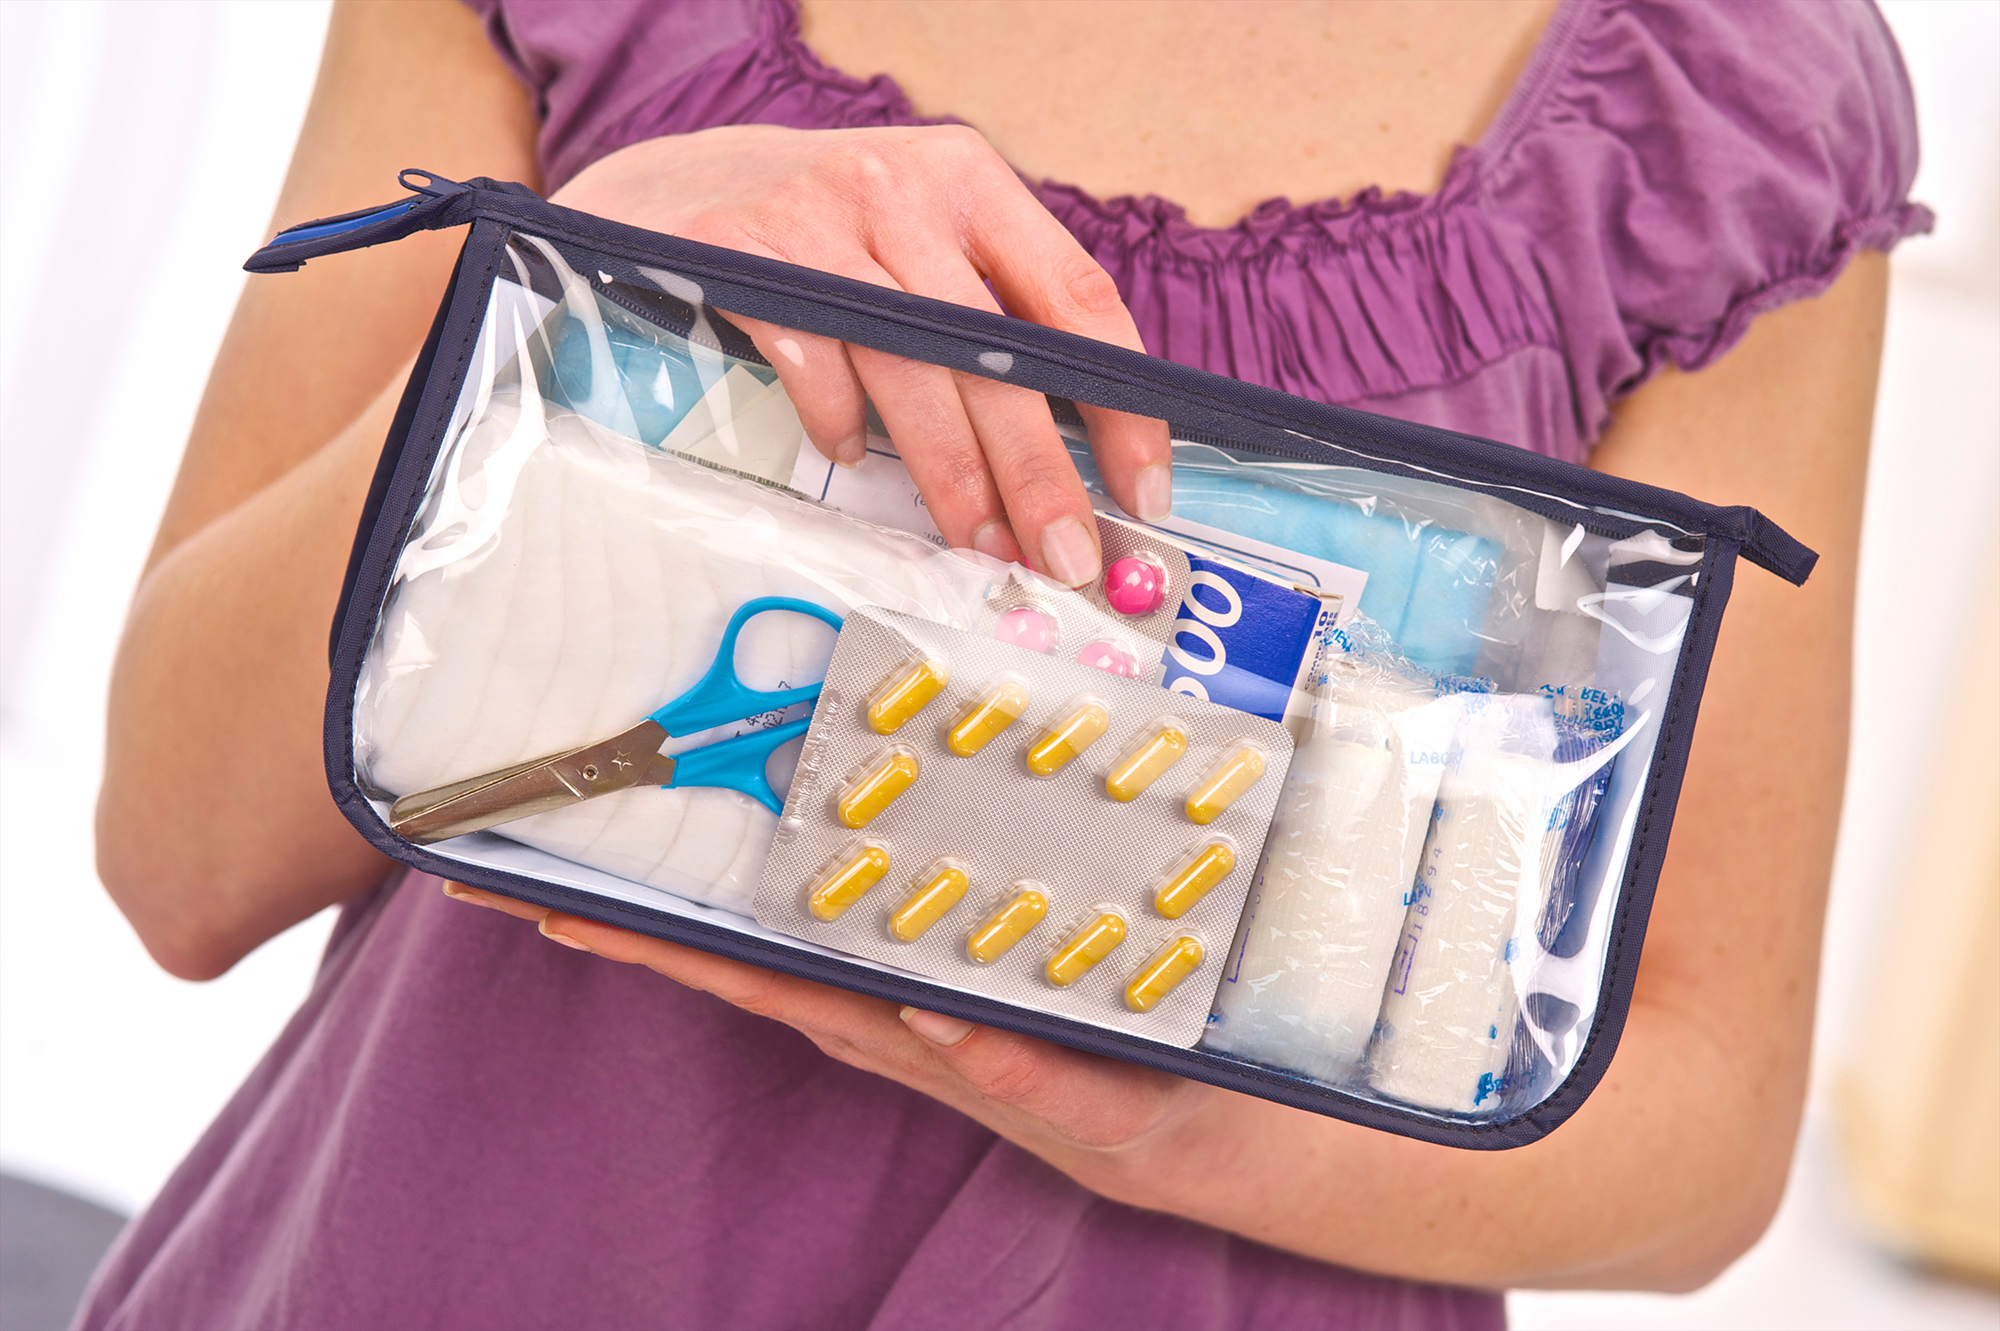 Woman holding travel health kit